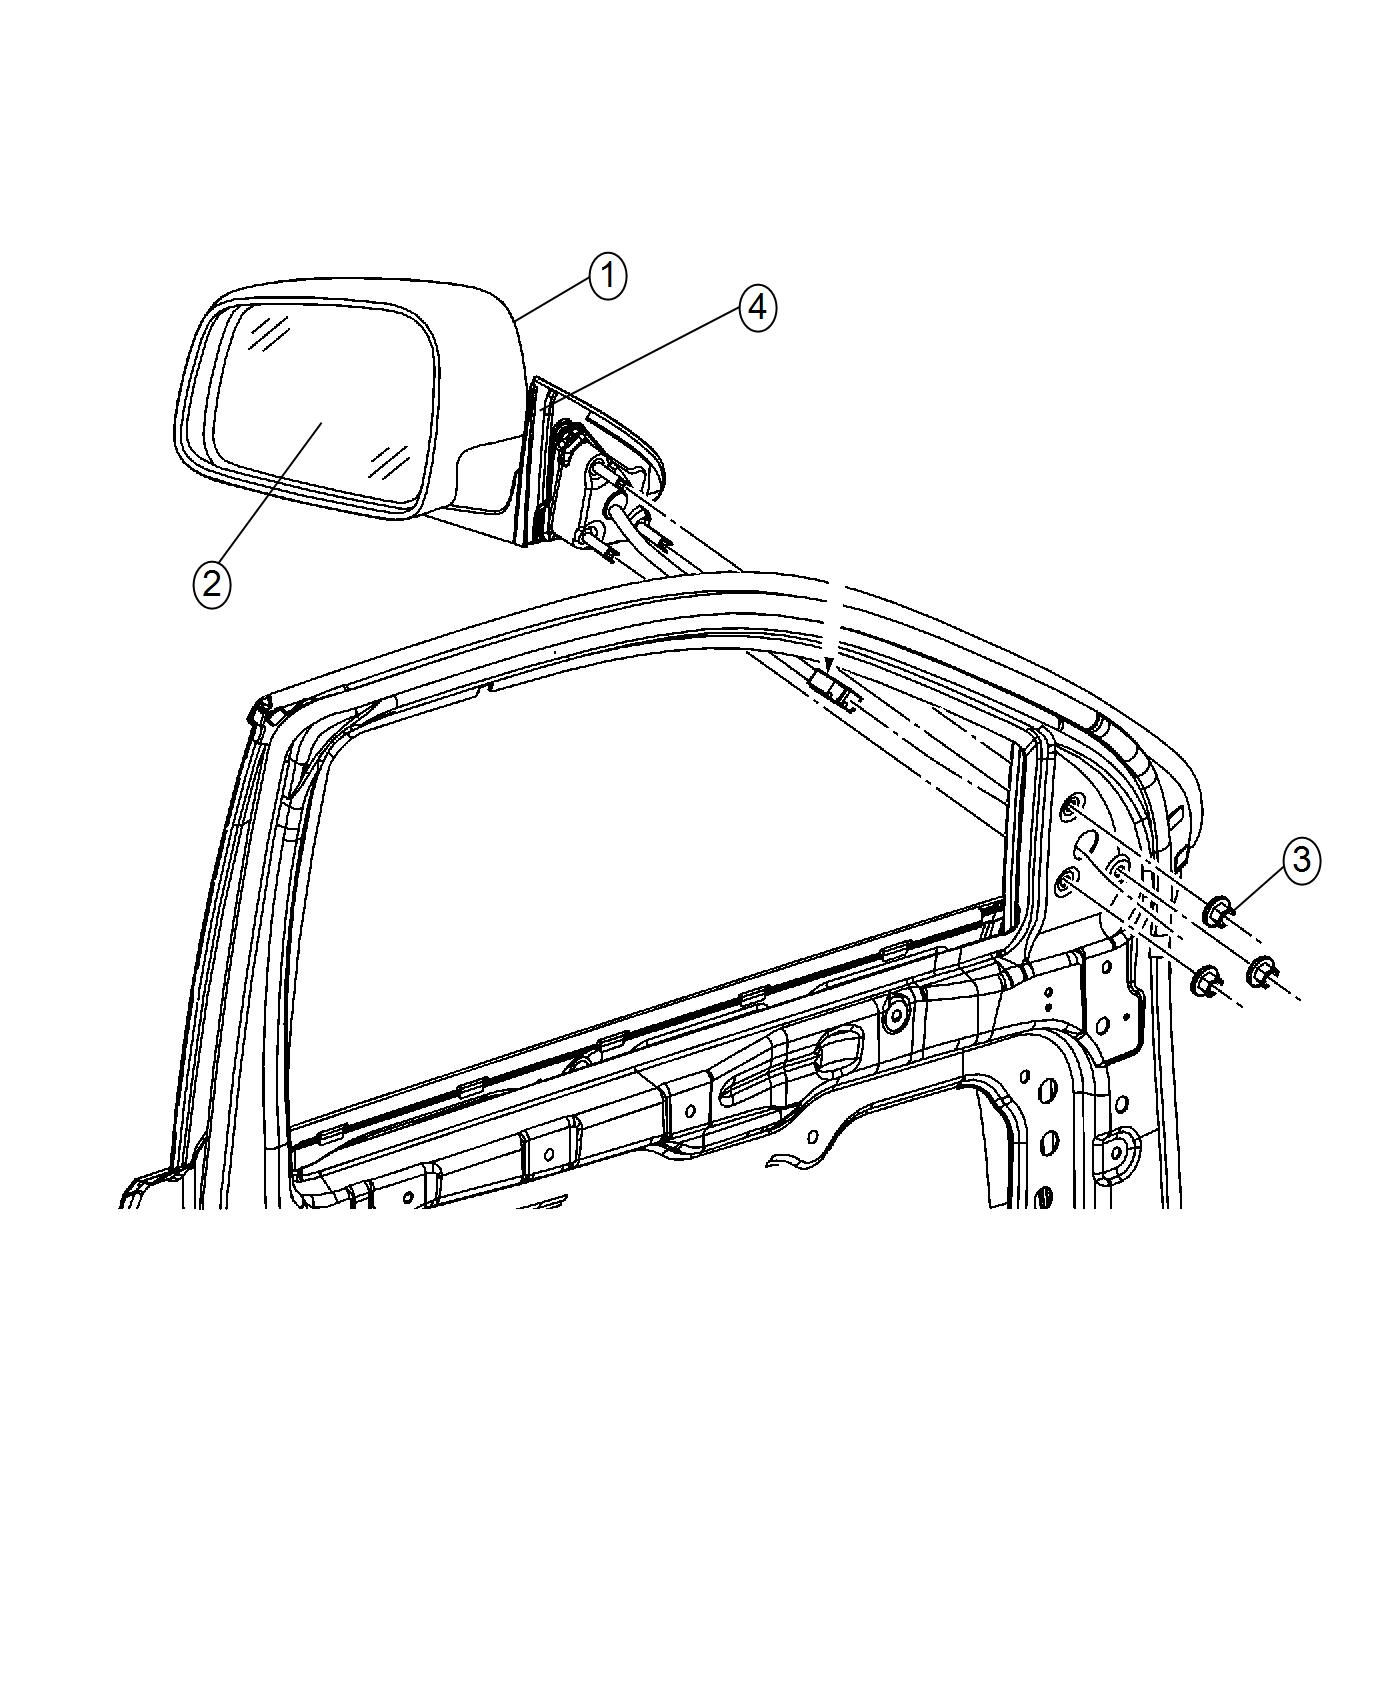 Dodge Mirror Wiring Diagram - Technical Diagrams on